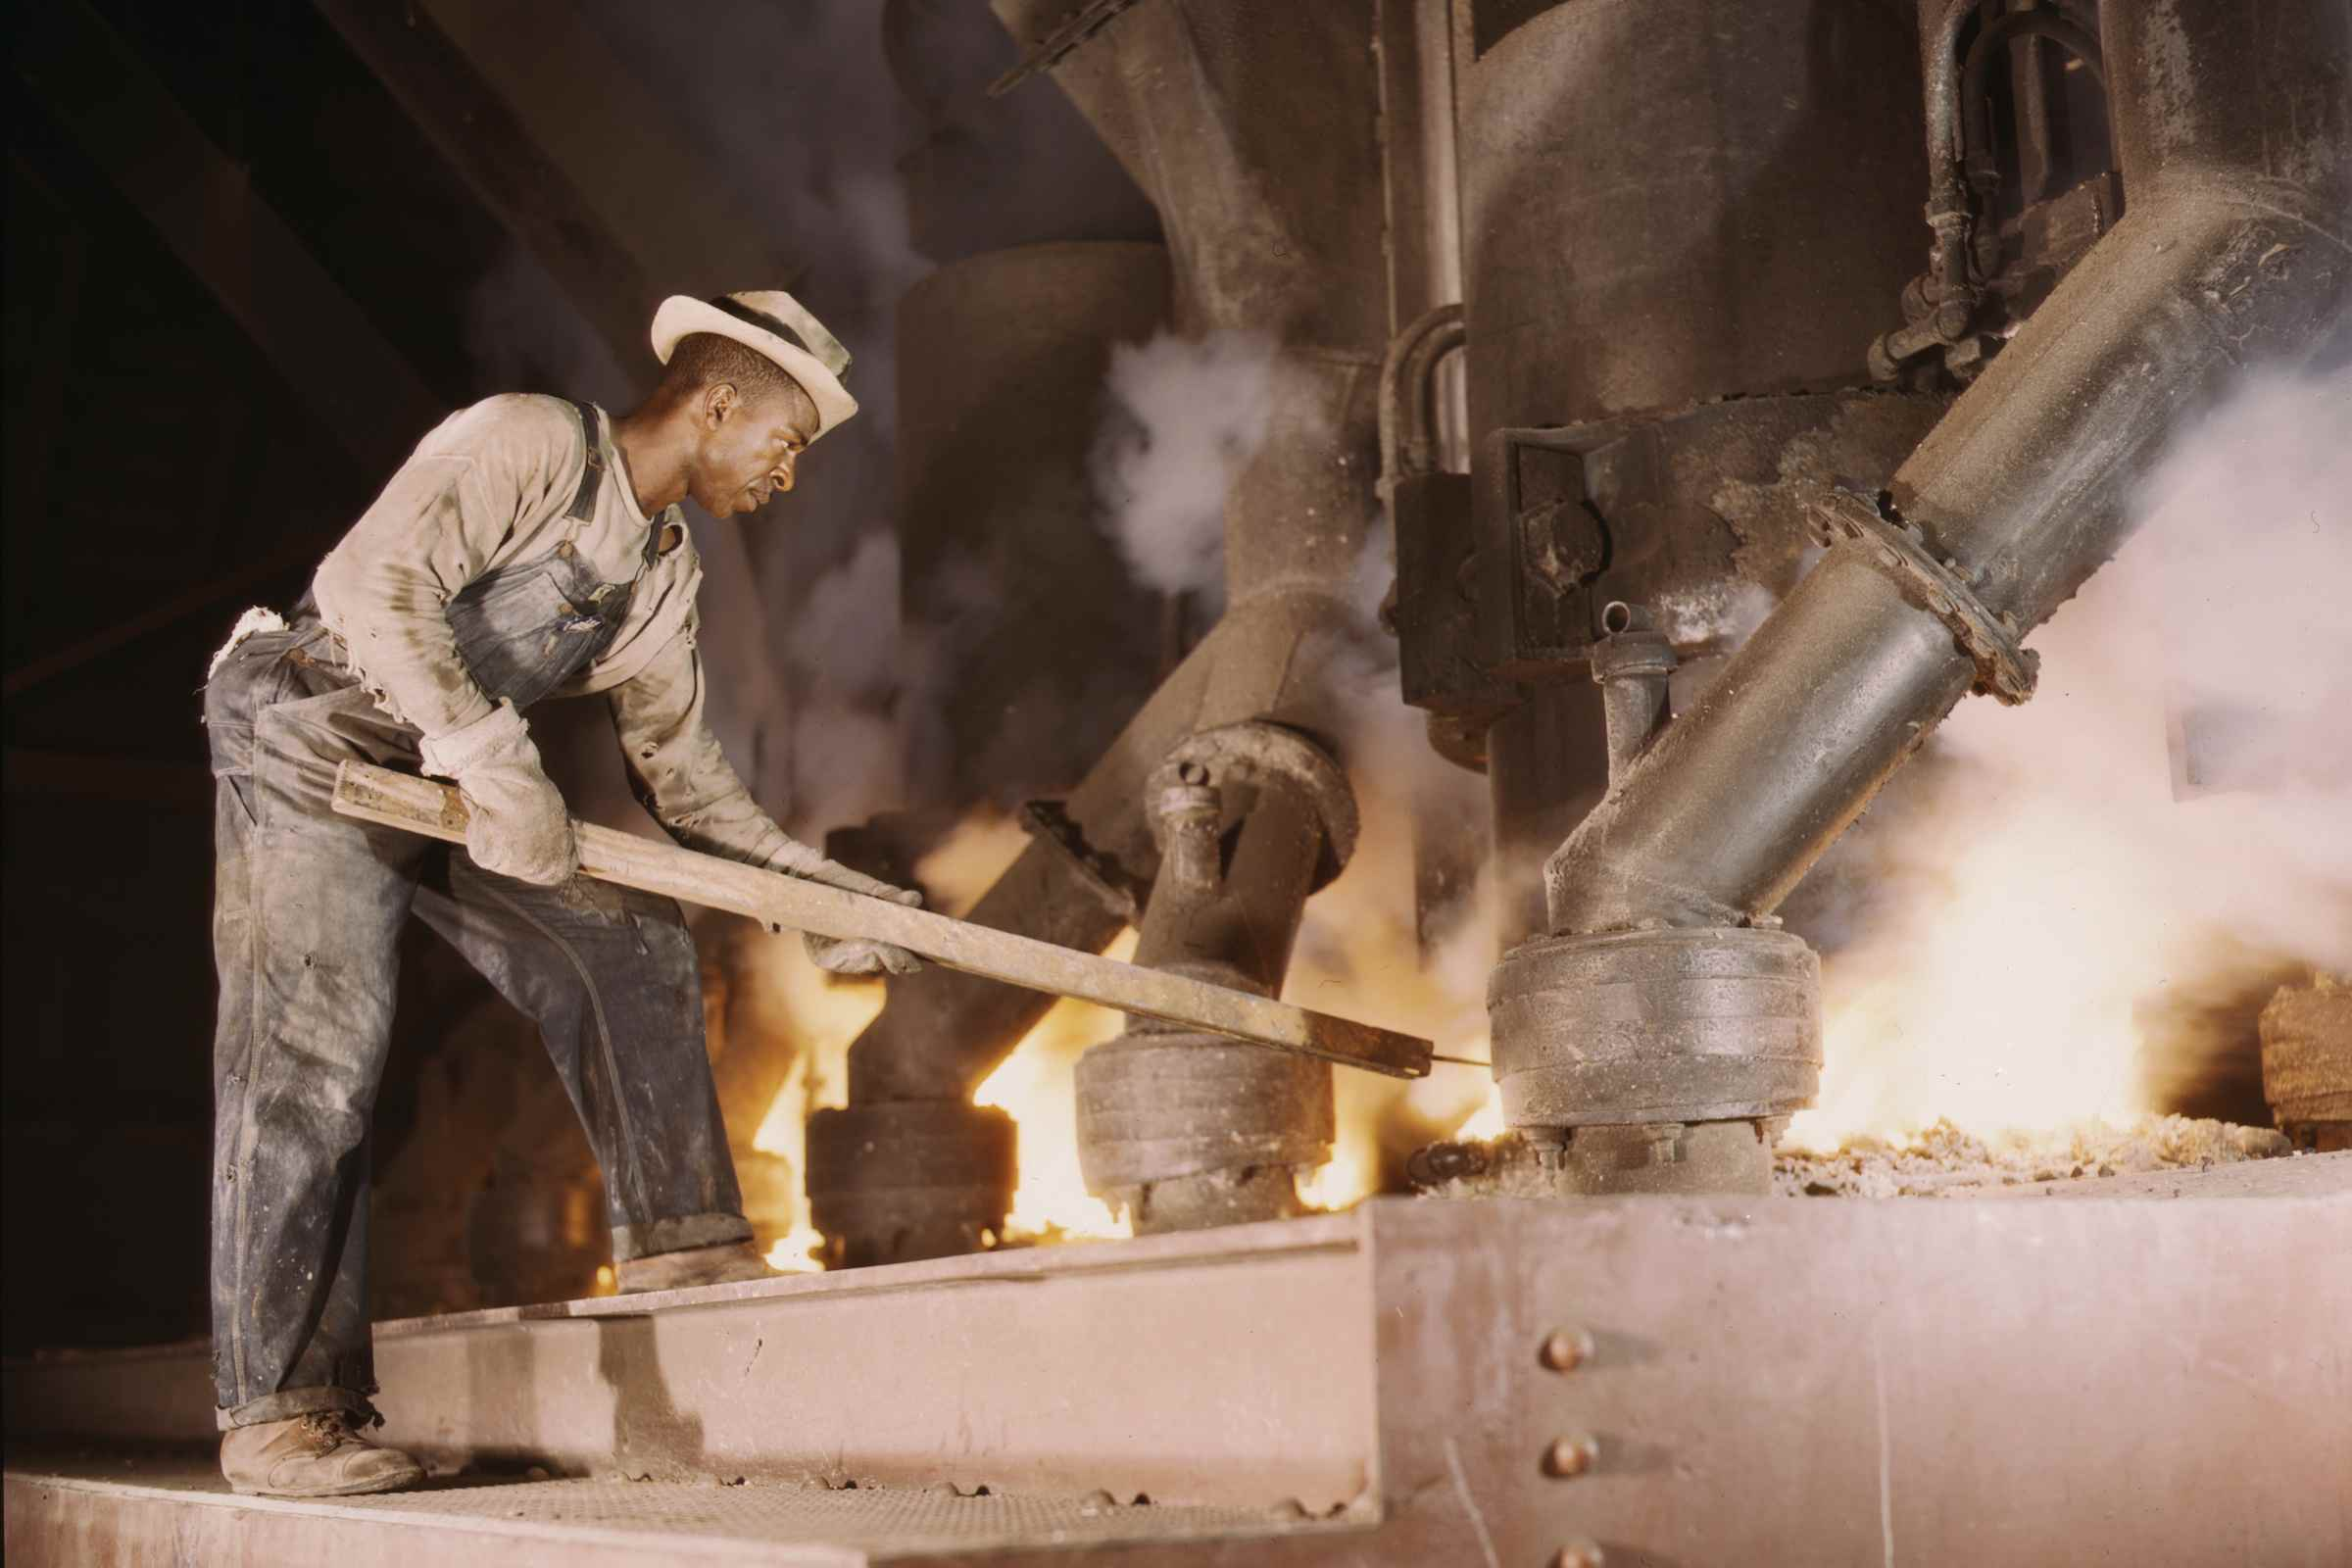 Man working at a smelting furnace